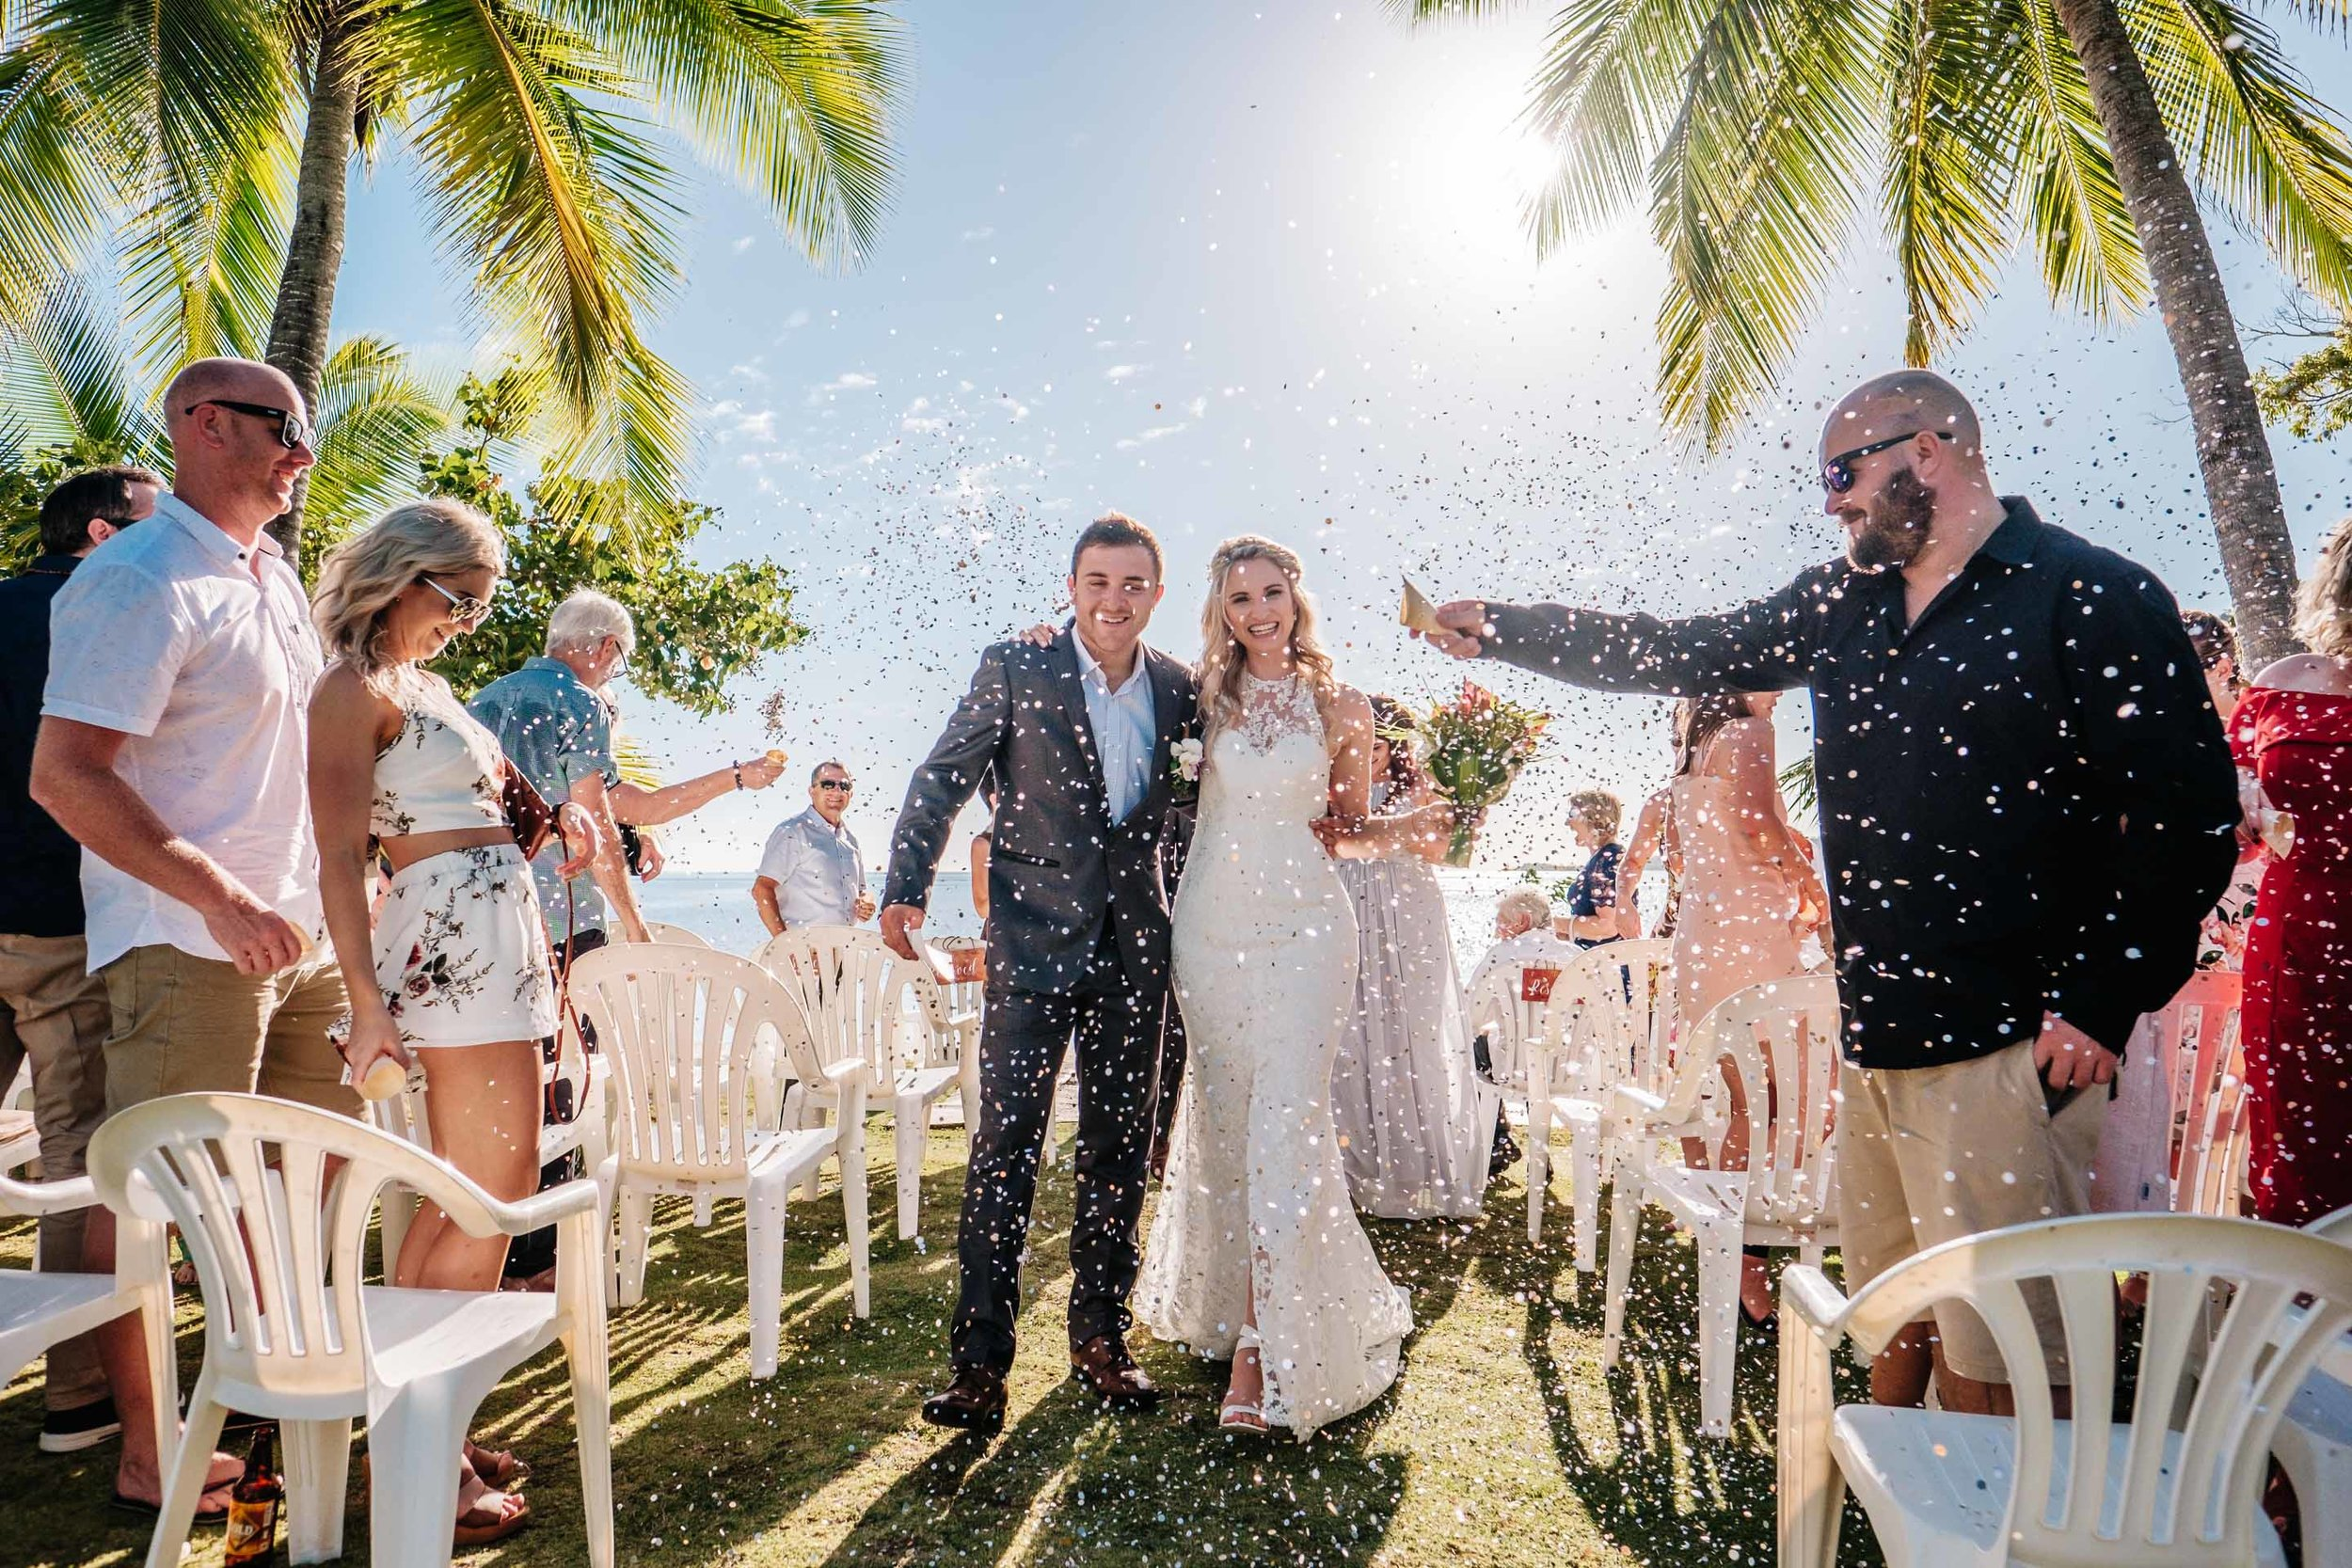 the newlyweds are showered in confetti as they walk down the aisle arm in arm